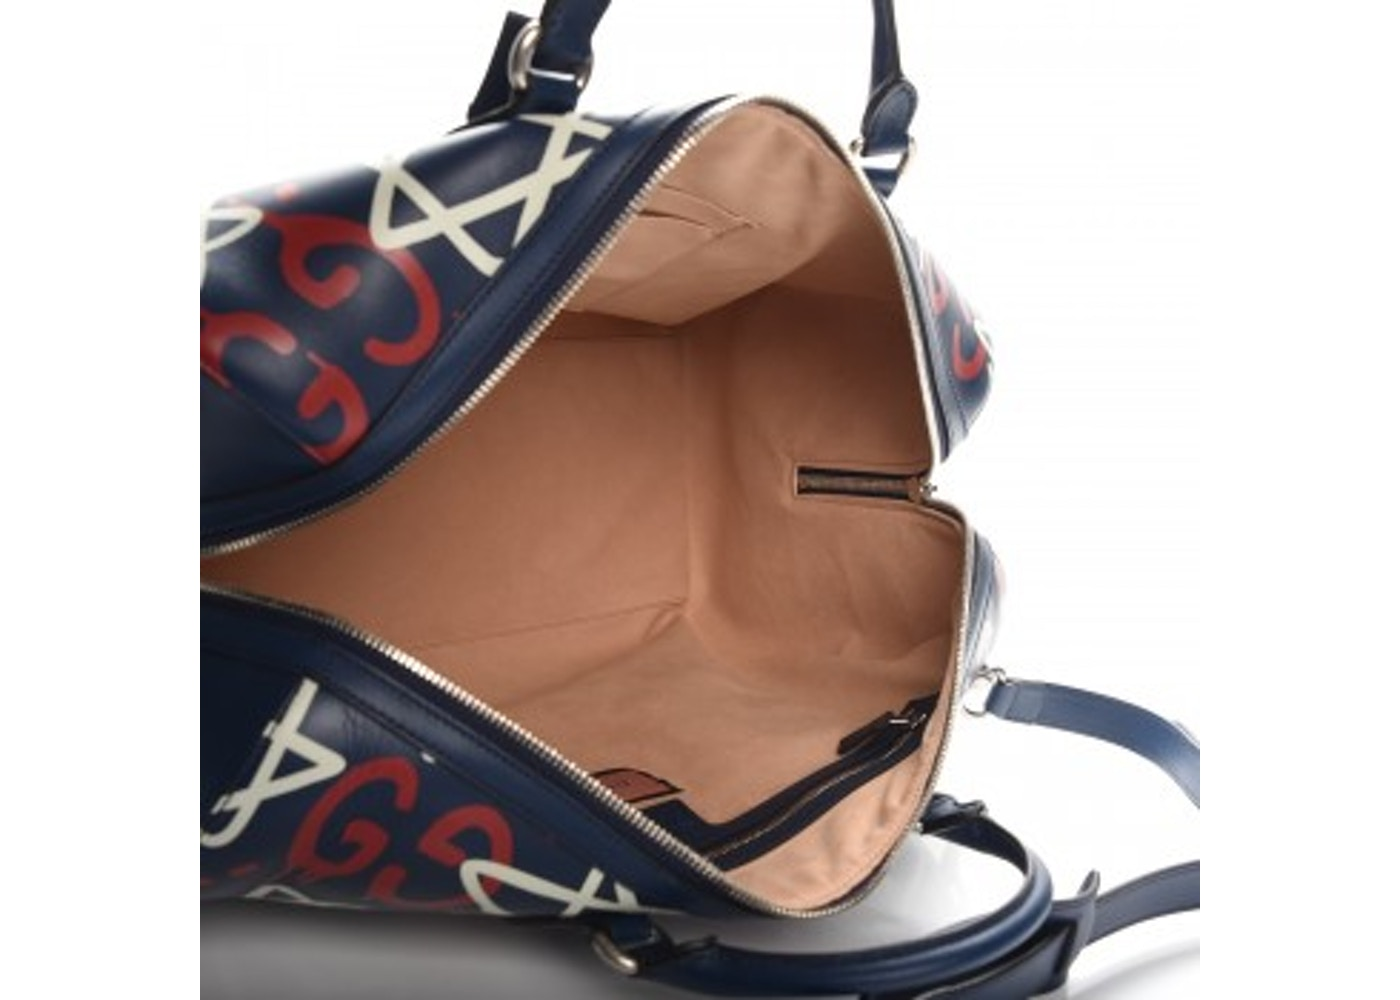 b7bd4d9c1e58 Gucci GucciGhost Duffle Bag GG Graffiti Print Overlay Navy Blue/Red/White